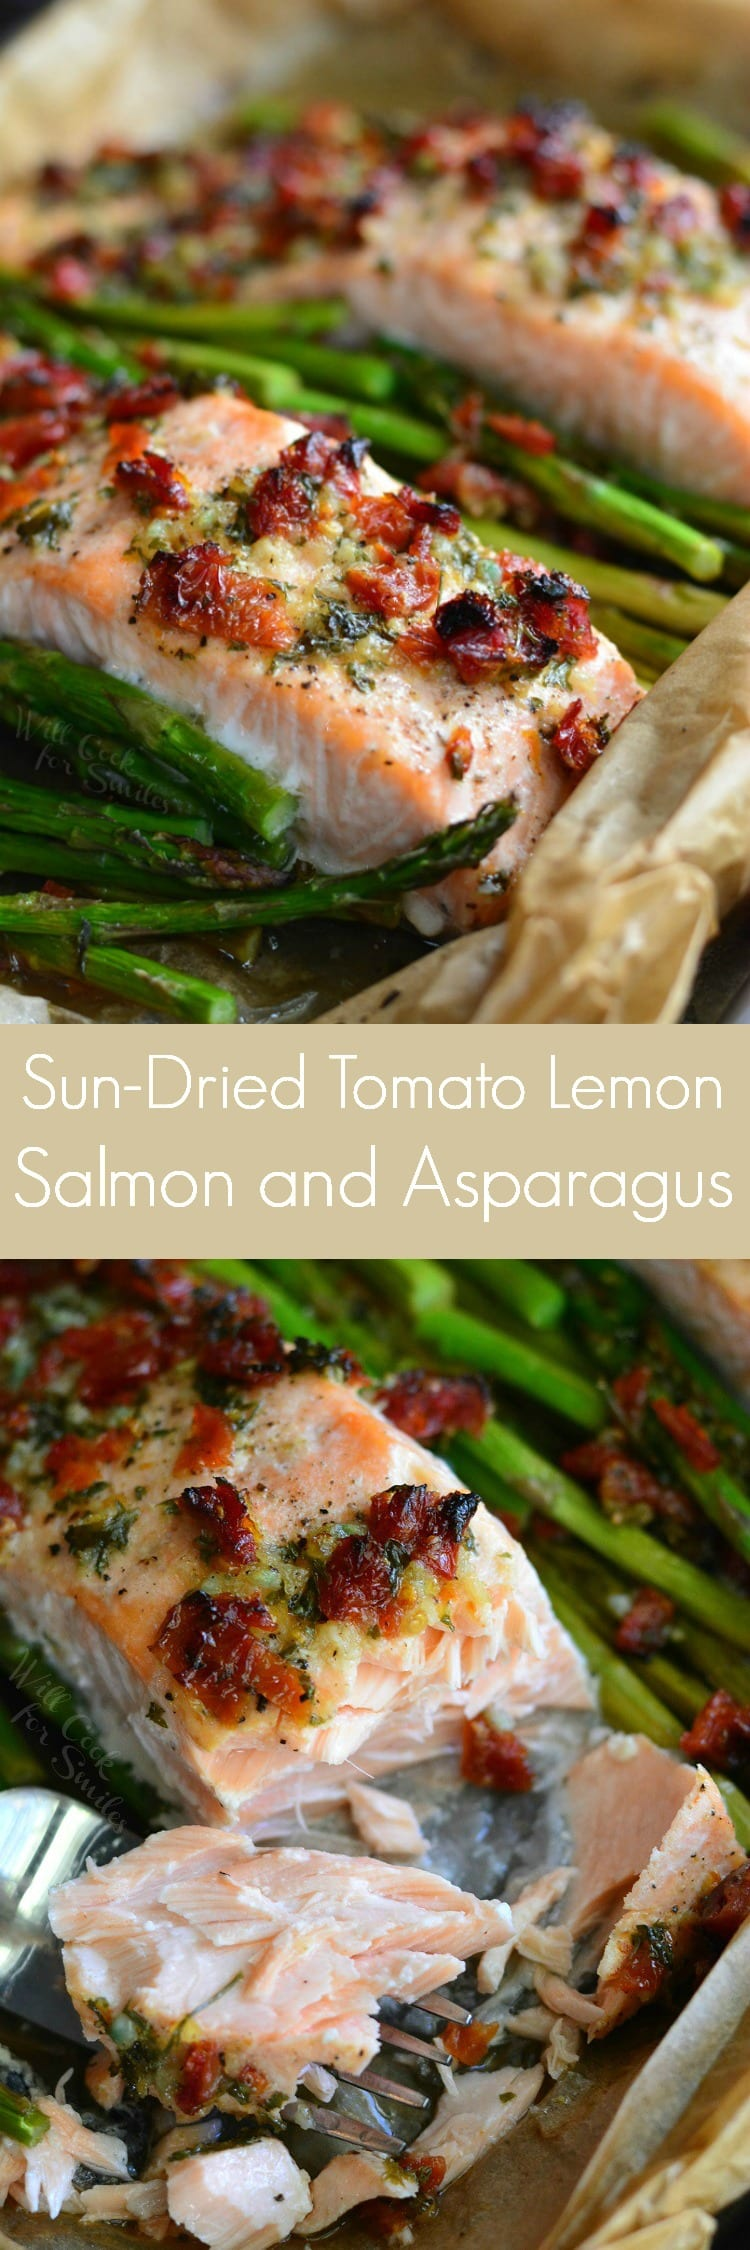 Sun Dried Tomato Lemon Baked Salmon and Asparagus in parchment paper on a baking sheet collage